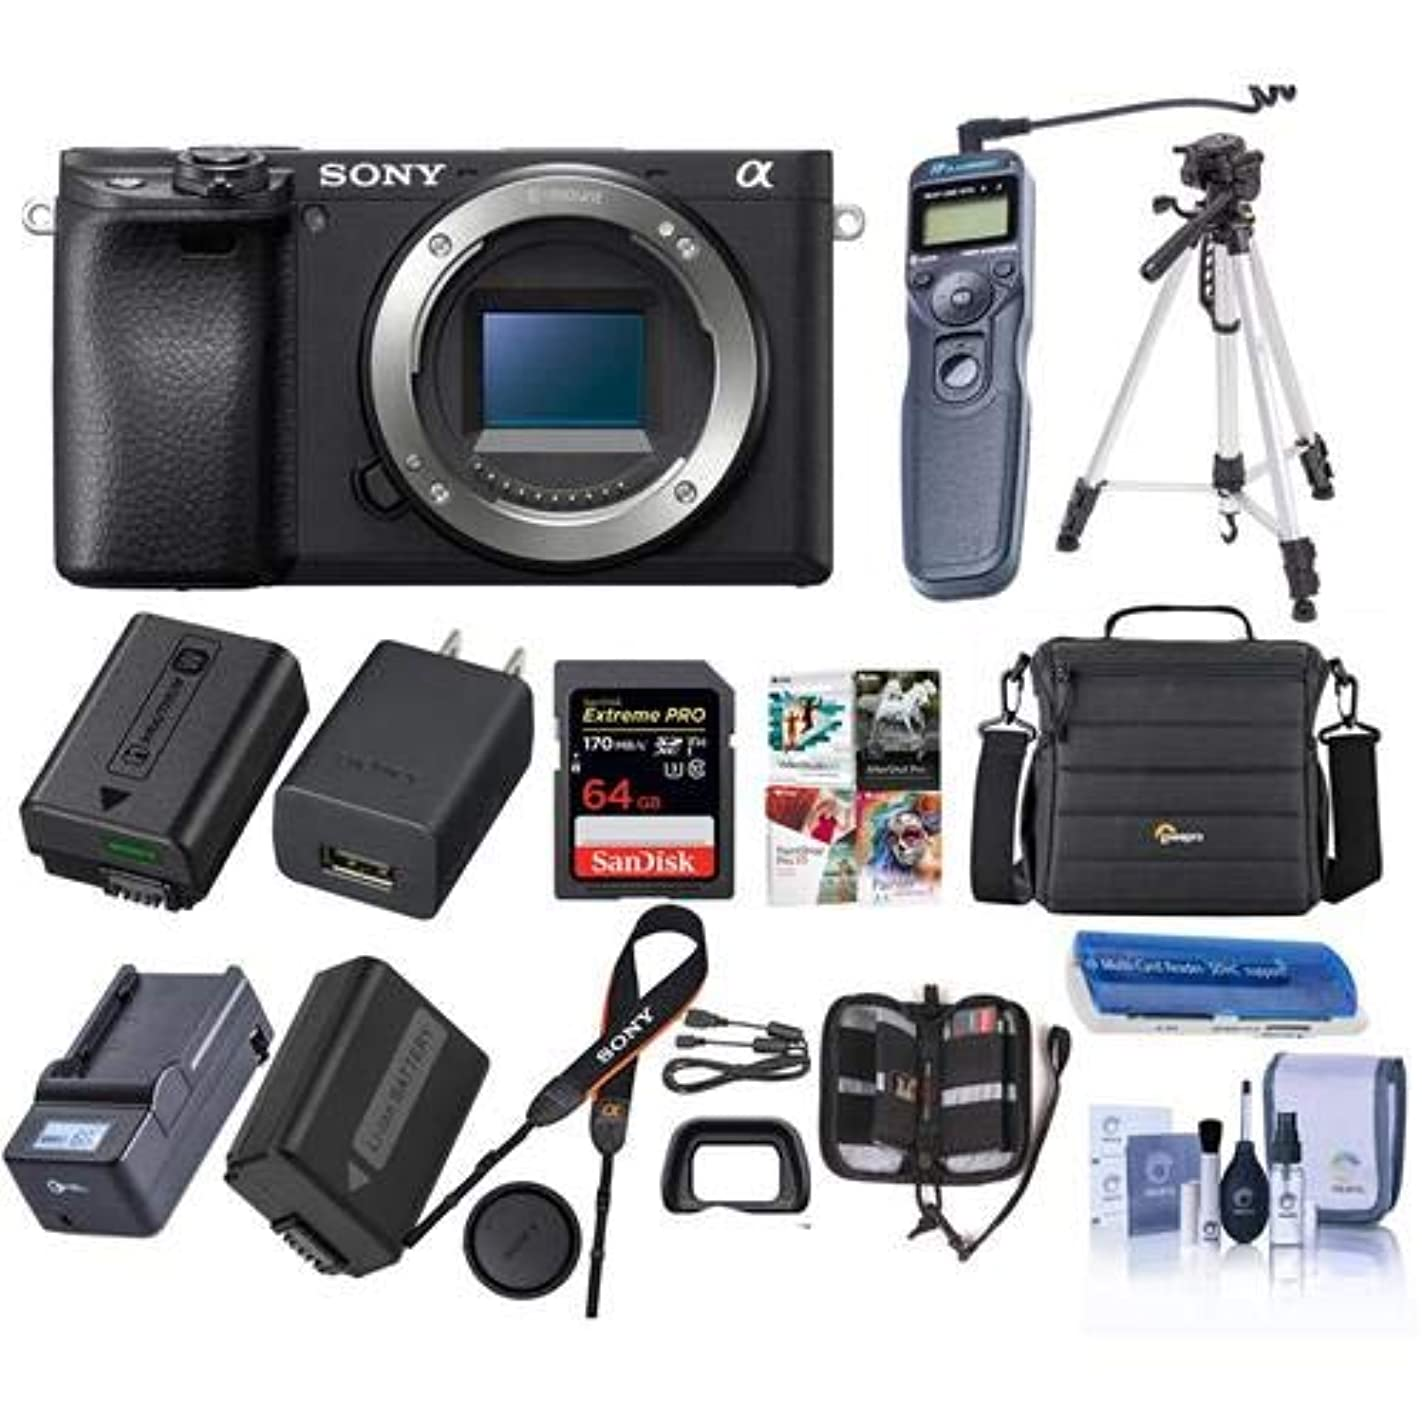 Sony Alpha a6400 24.2MP Mirrorless Digital Camera - Bundle with Camera Case, 64GB SDHC Card, 40.5mm Filter Kit, Tripod, Spare Battery, Remote Shutter Trigger, Compact Charger, Software Pack and More v86908556588